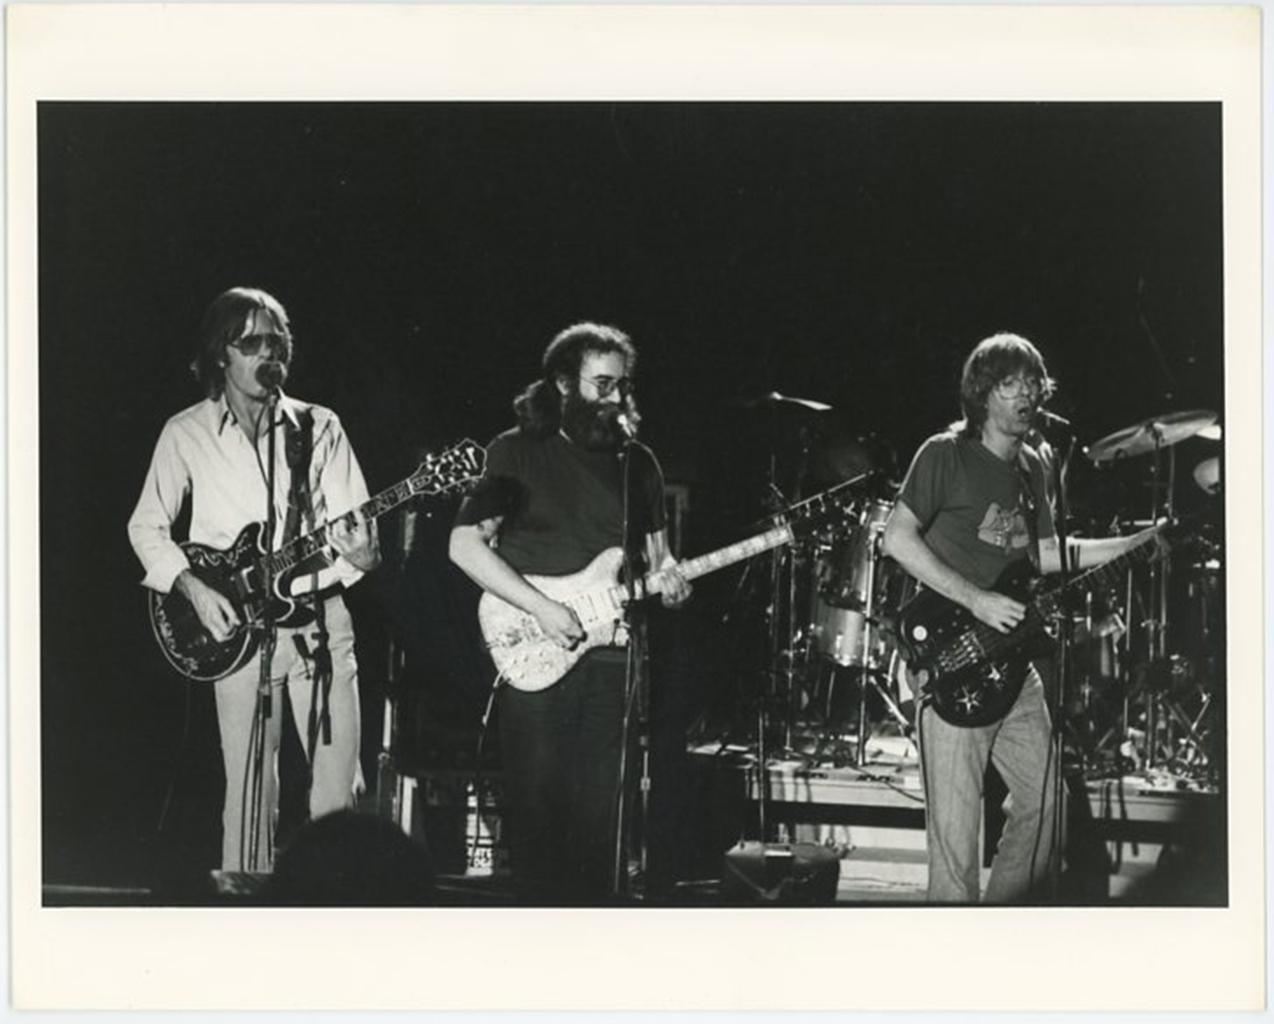 The Grateful Dead Playing in a Concert in 1978